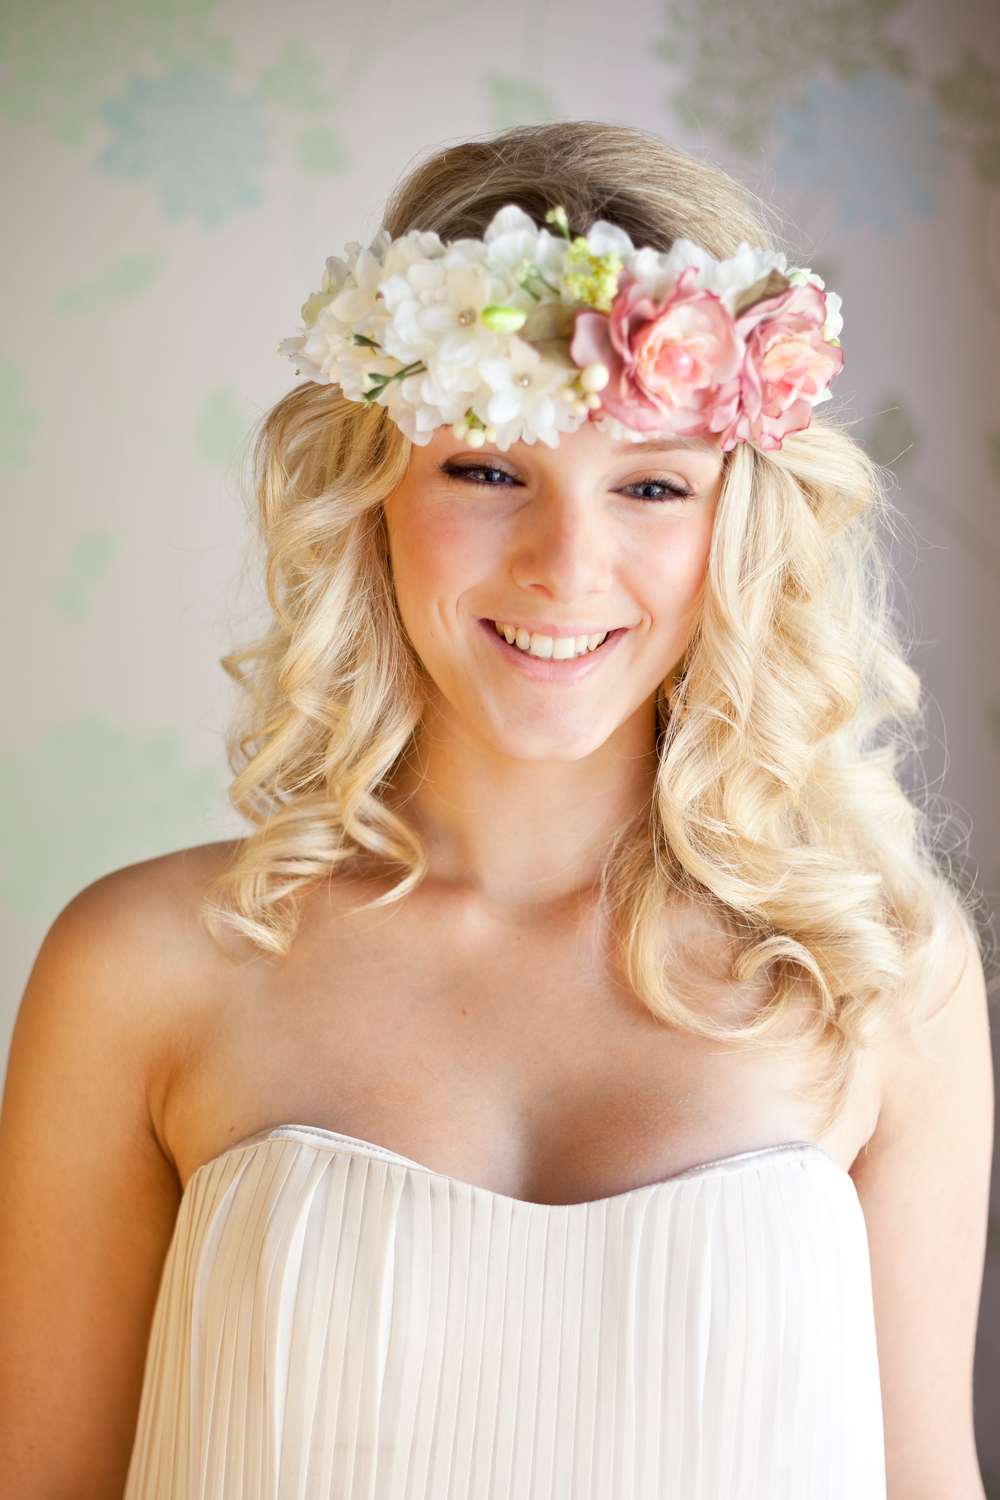 Lovehair floral headbands-020.jpg